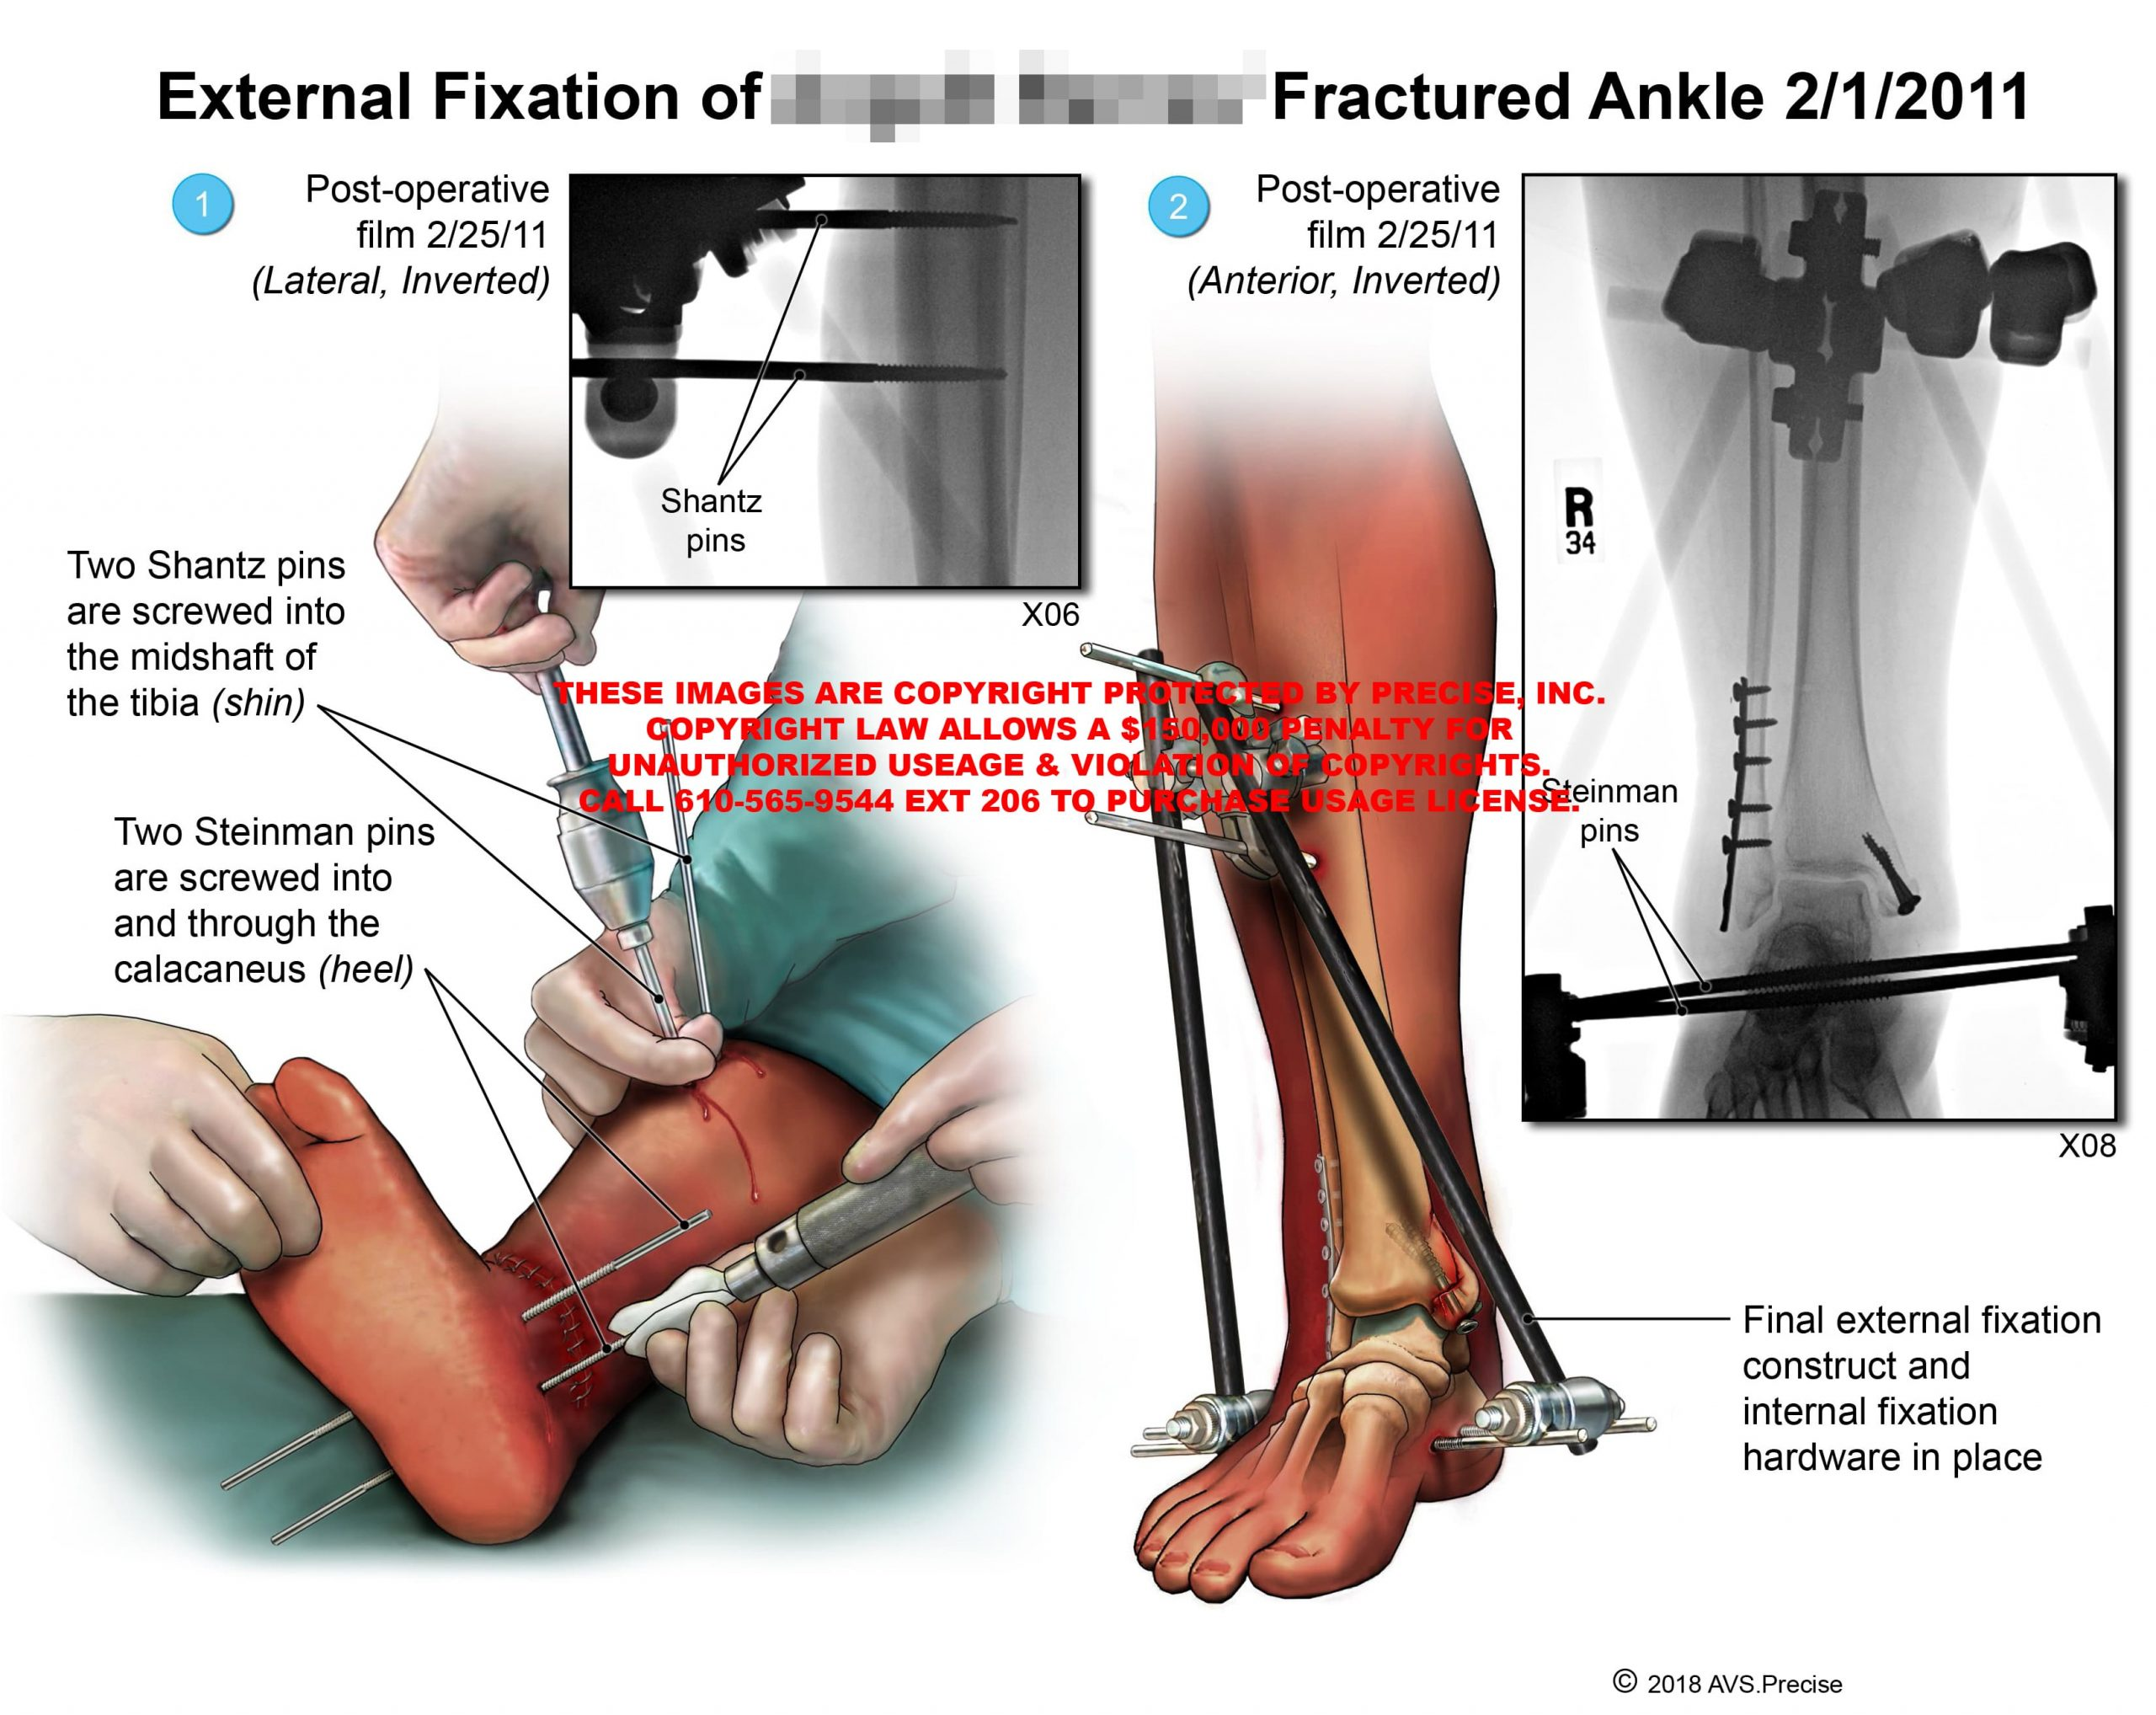 External Fixation of Fractured Ankle